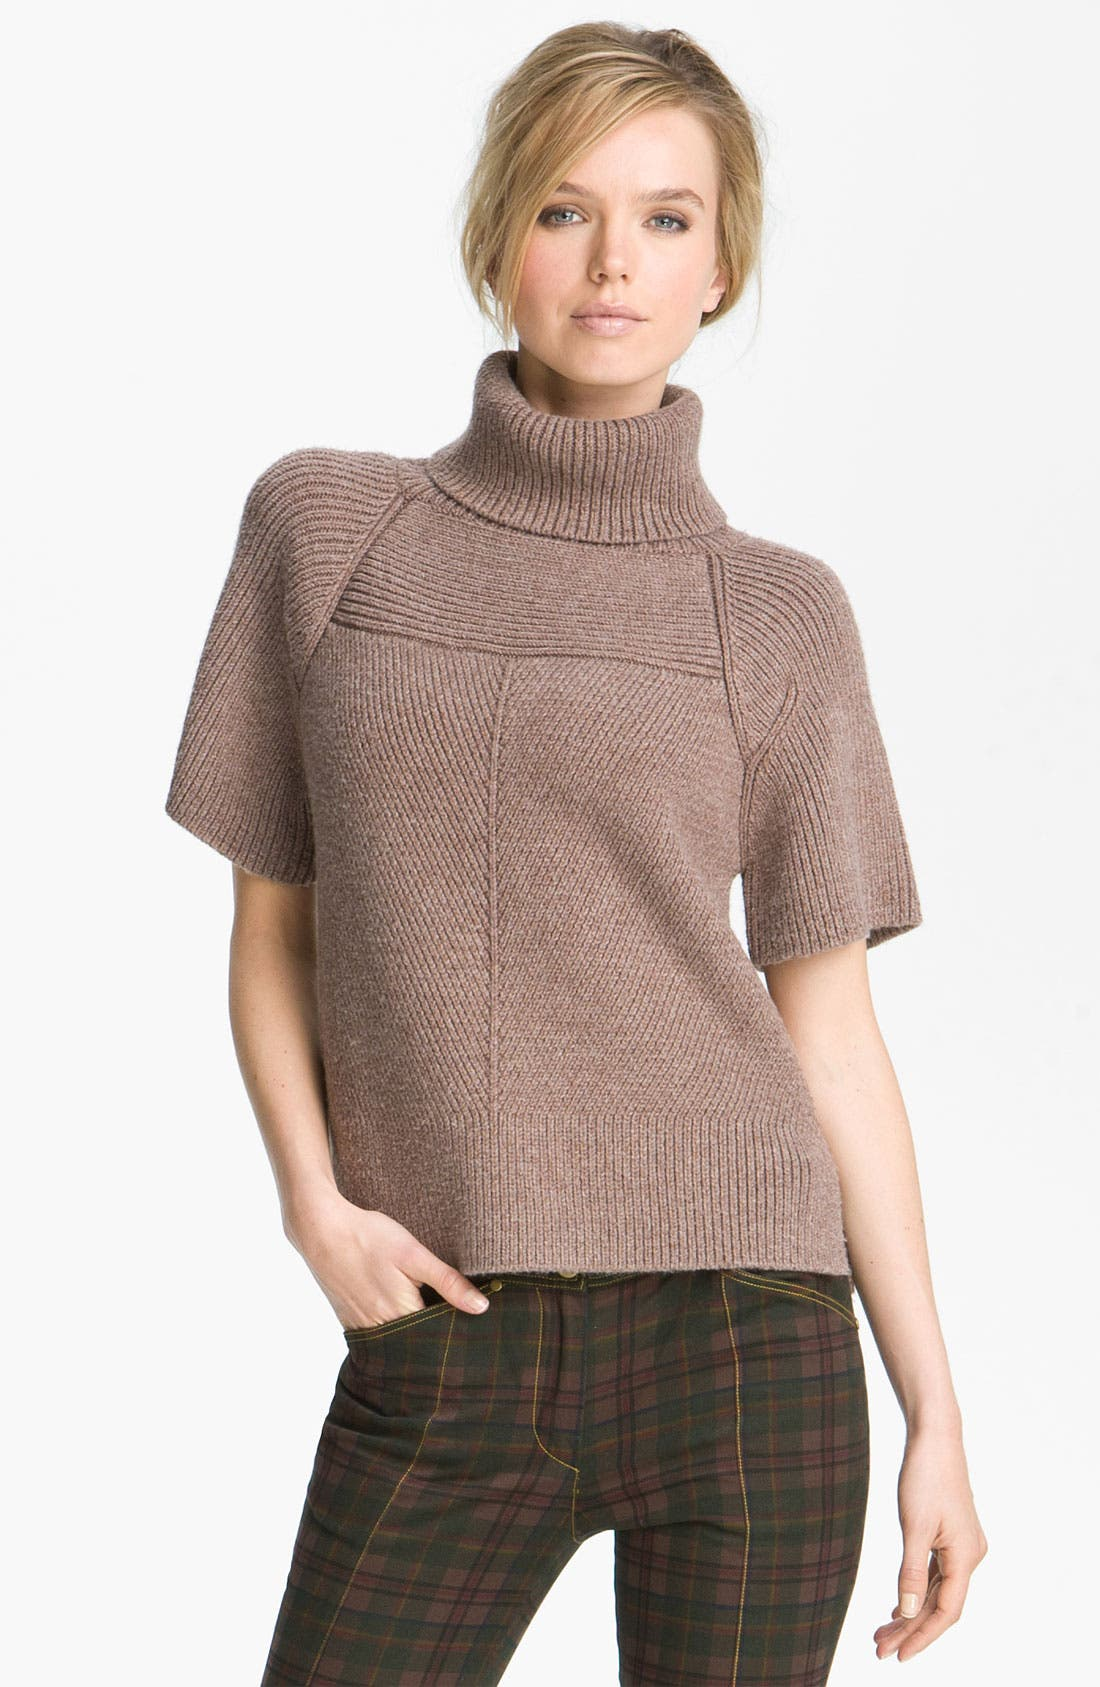 Alternate Image 1 Selected - Derek Lam 10 Crosby Mixed Rib Turtleneck Sweater